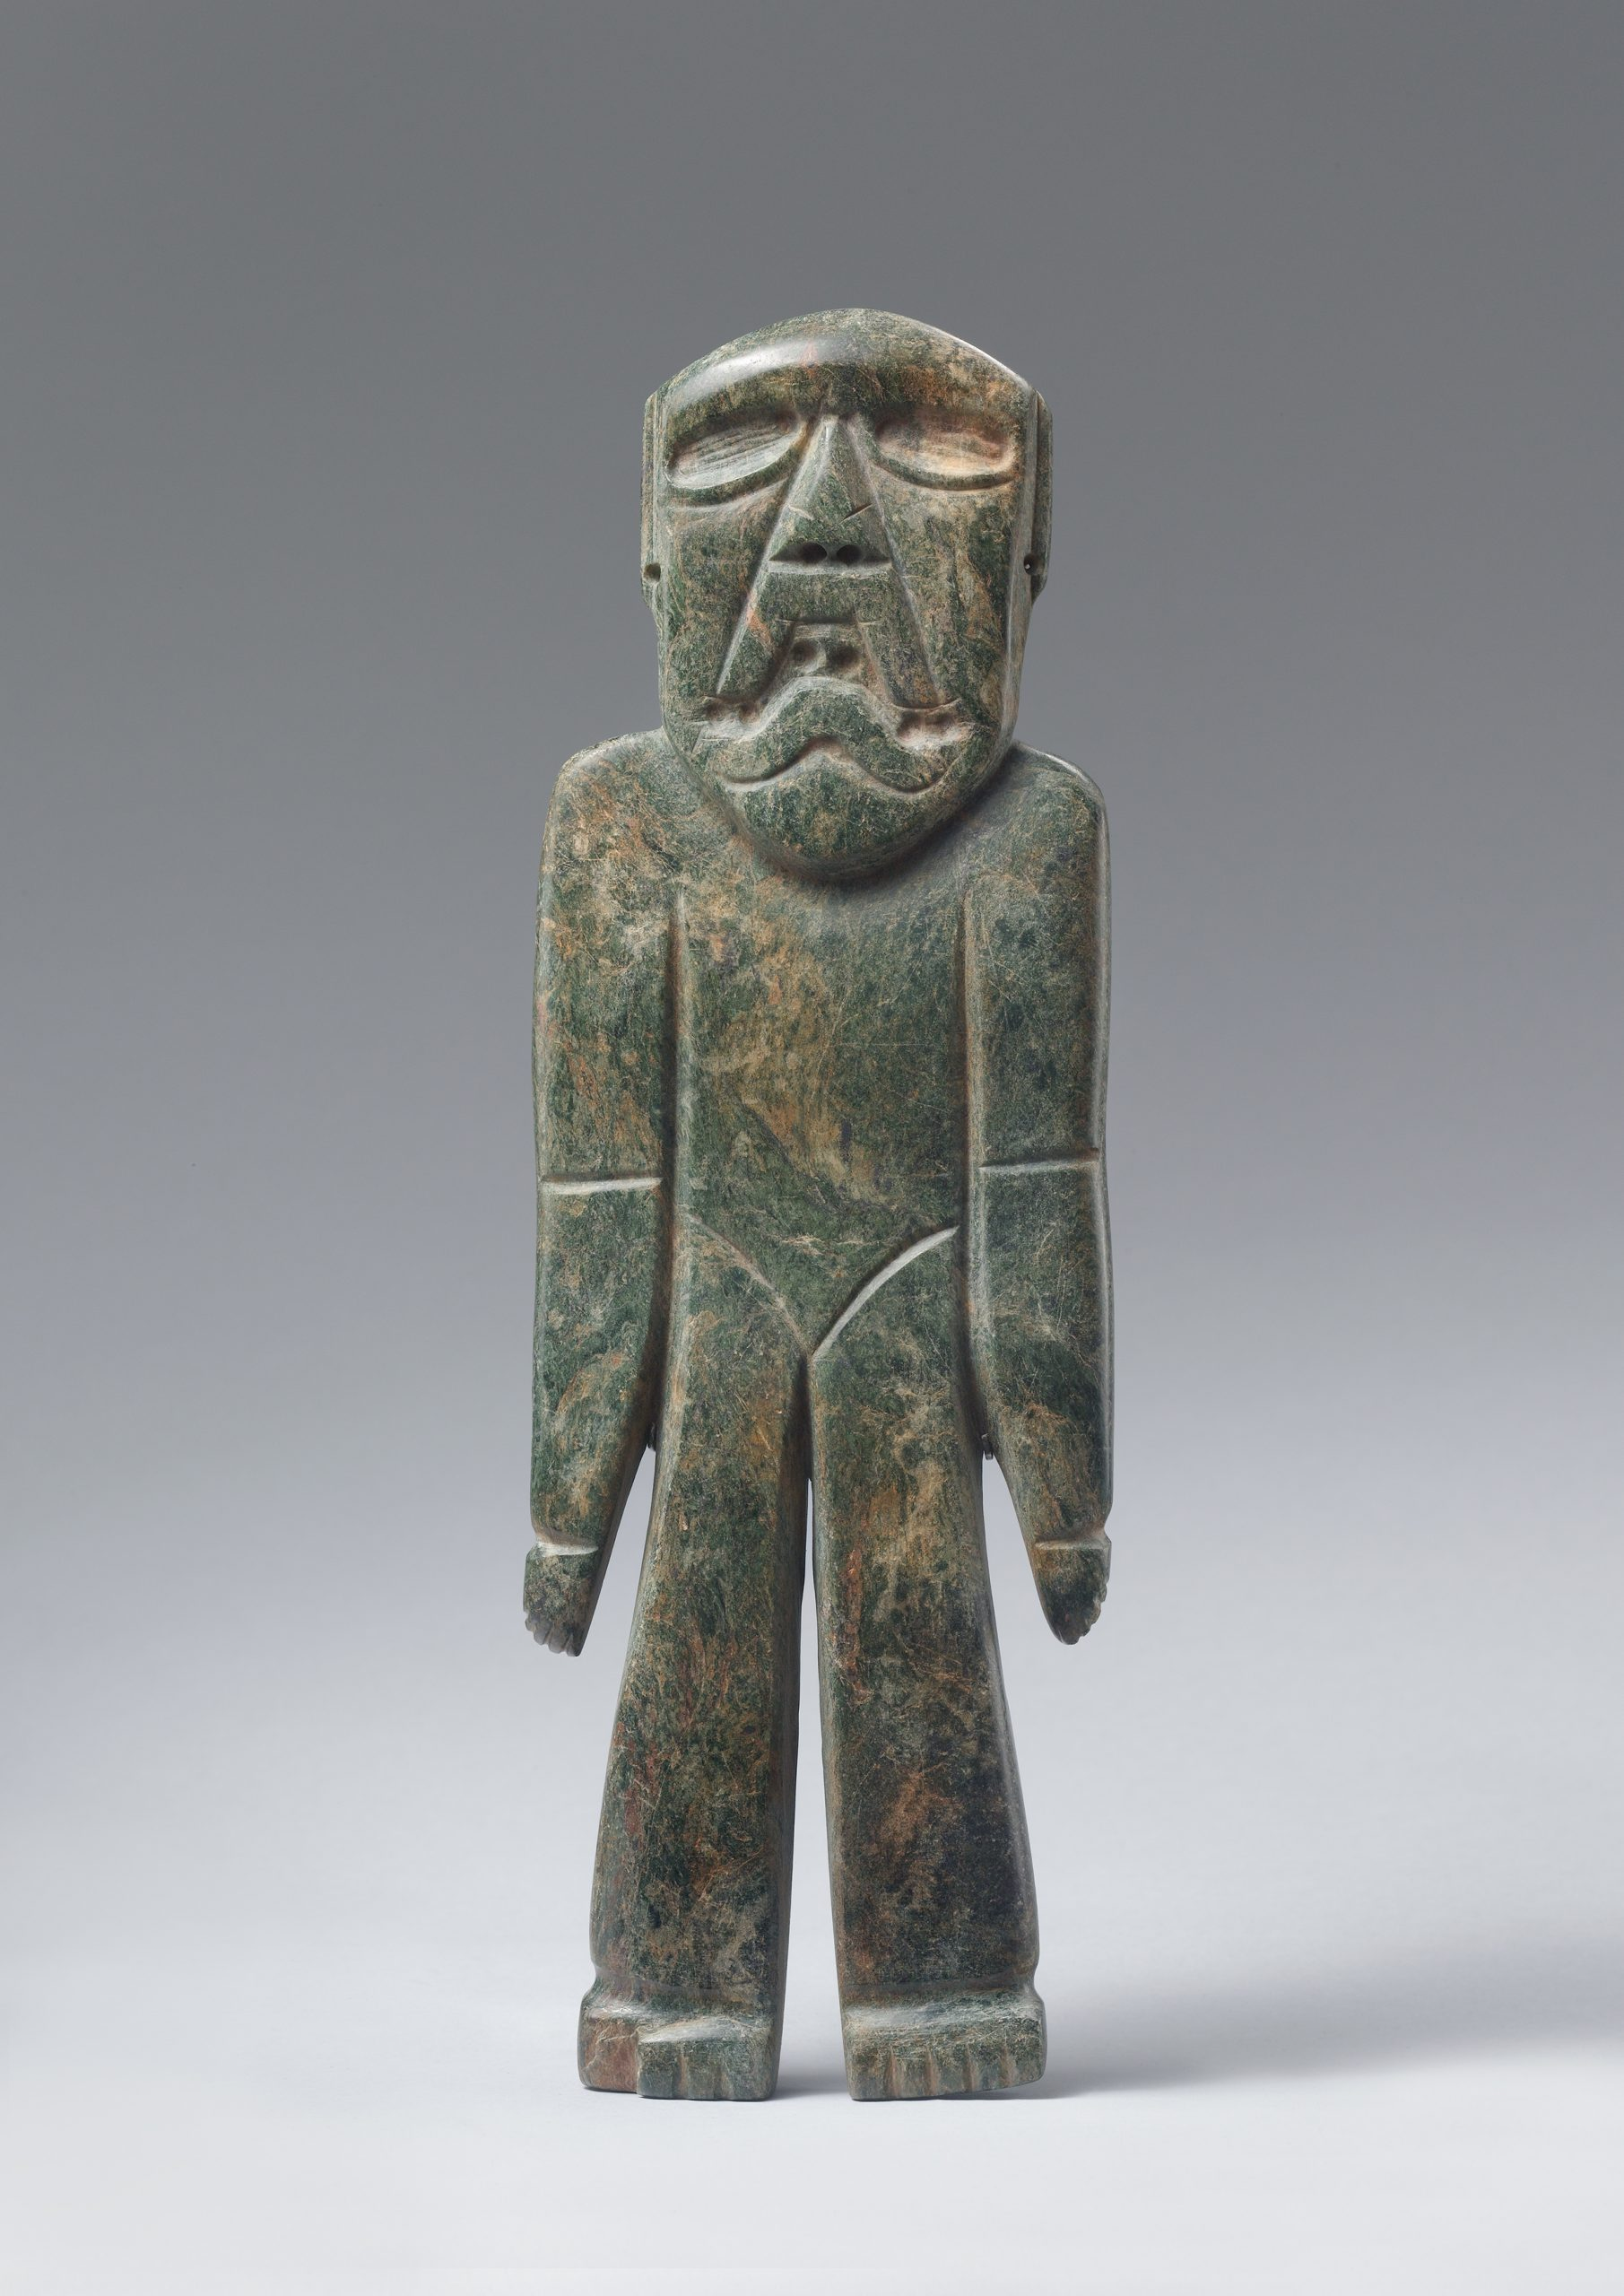 Standing stone figure with large eyes, triangular face, and hands resting at the sides.